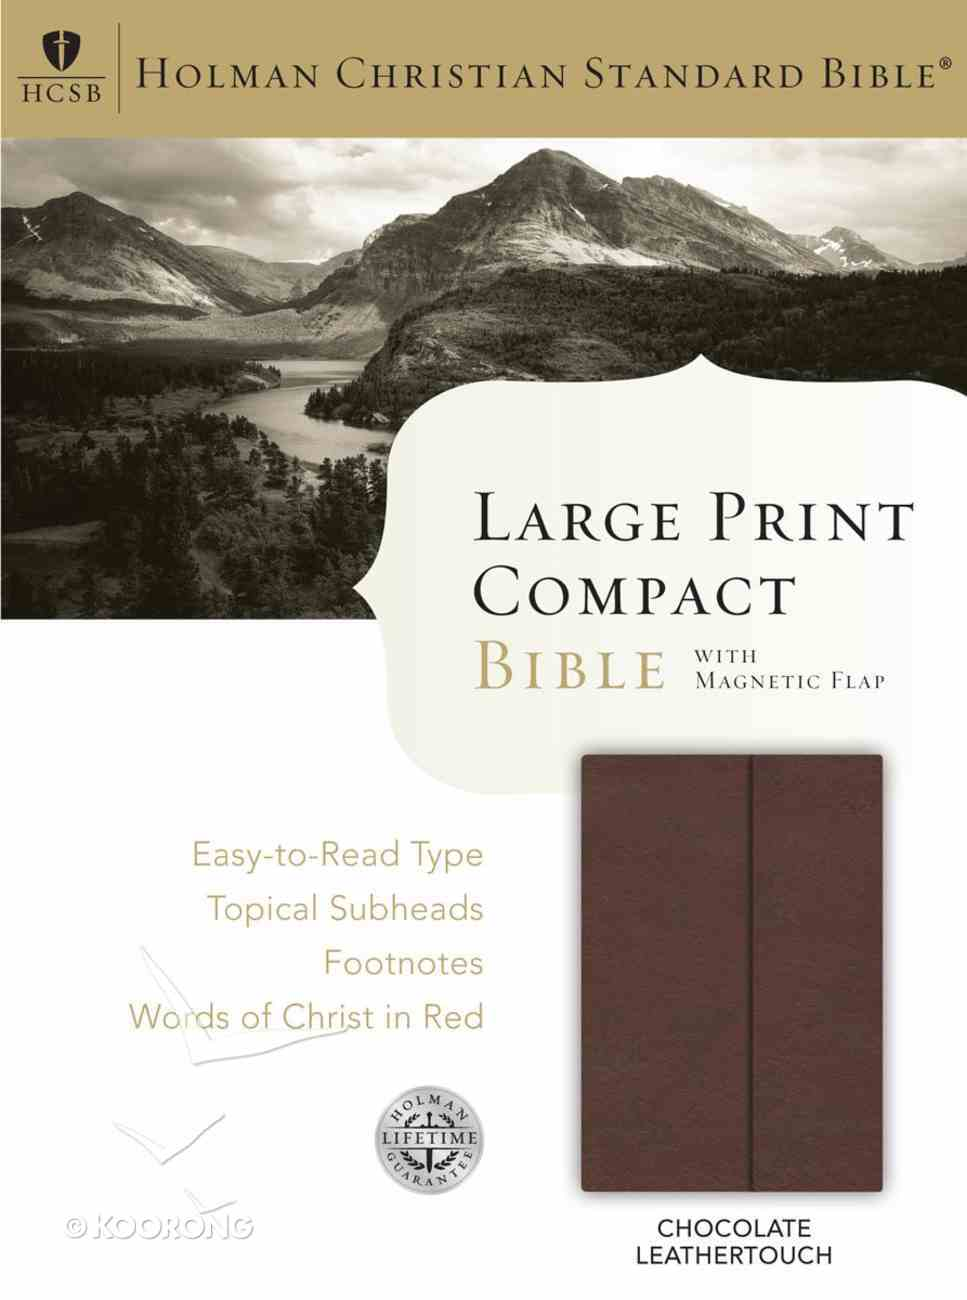 HCSB Large Print Compact Bible With Magnetic Flap Chocolate Leathertouch Imitation Leather